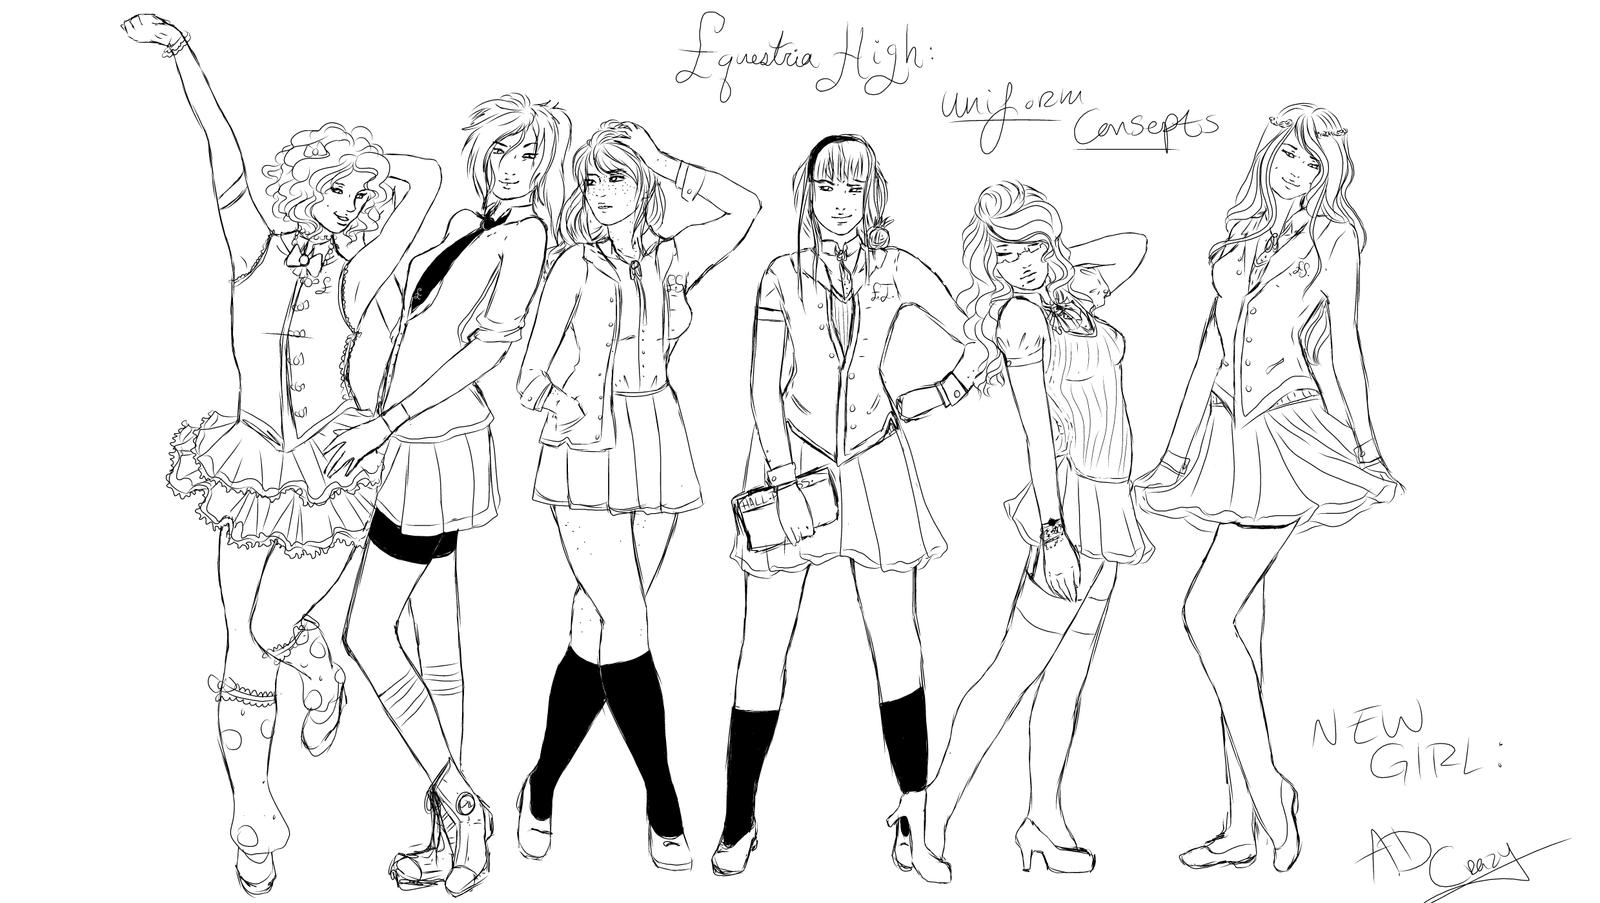 Line Art Uniform : New girl line up uniform concepts by rayna crazy on